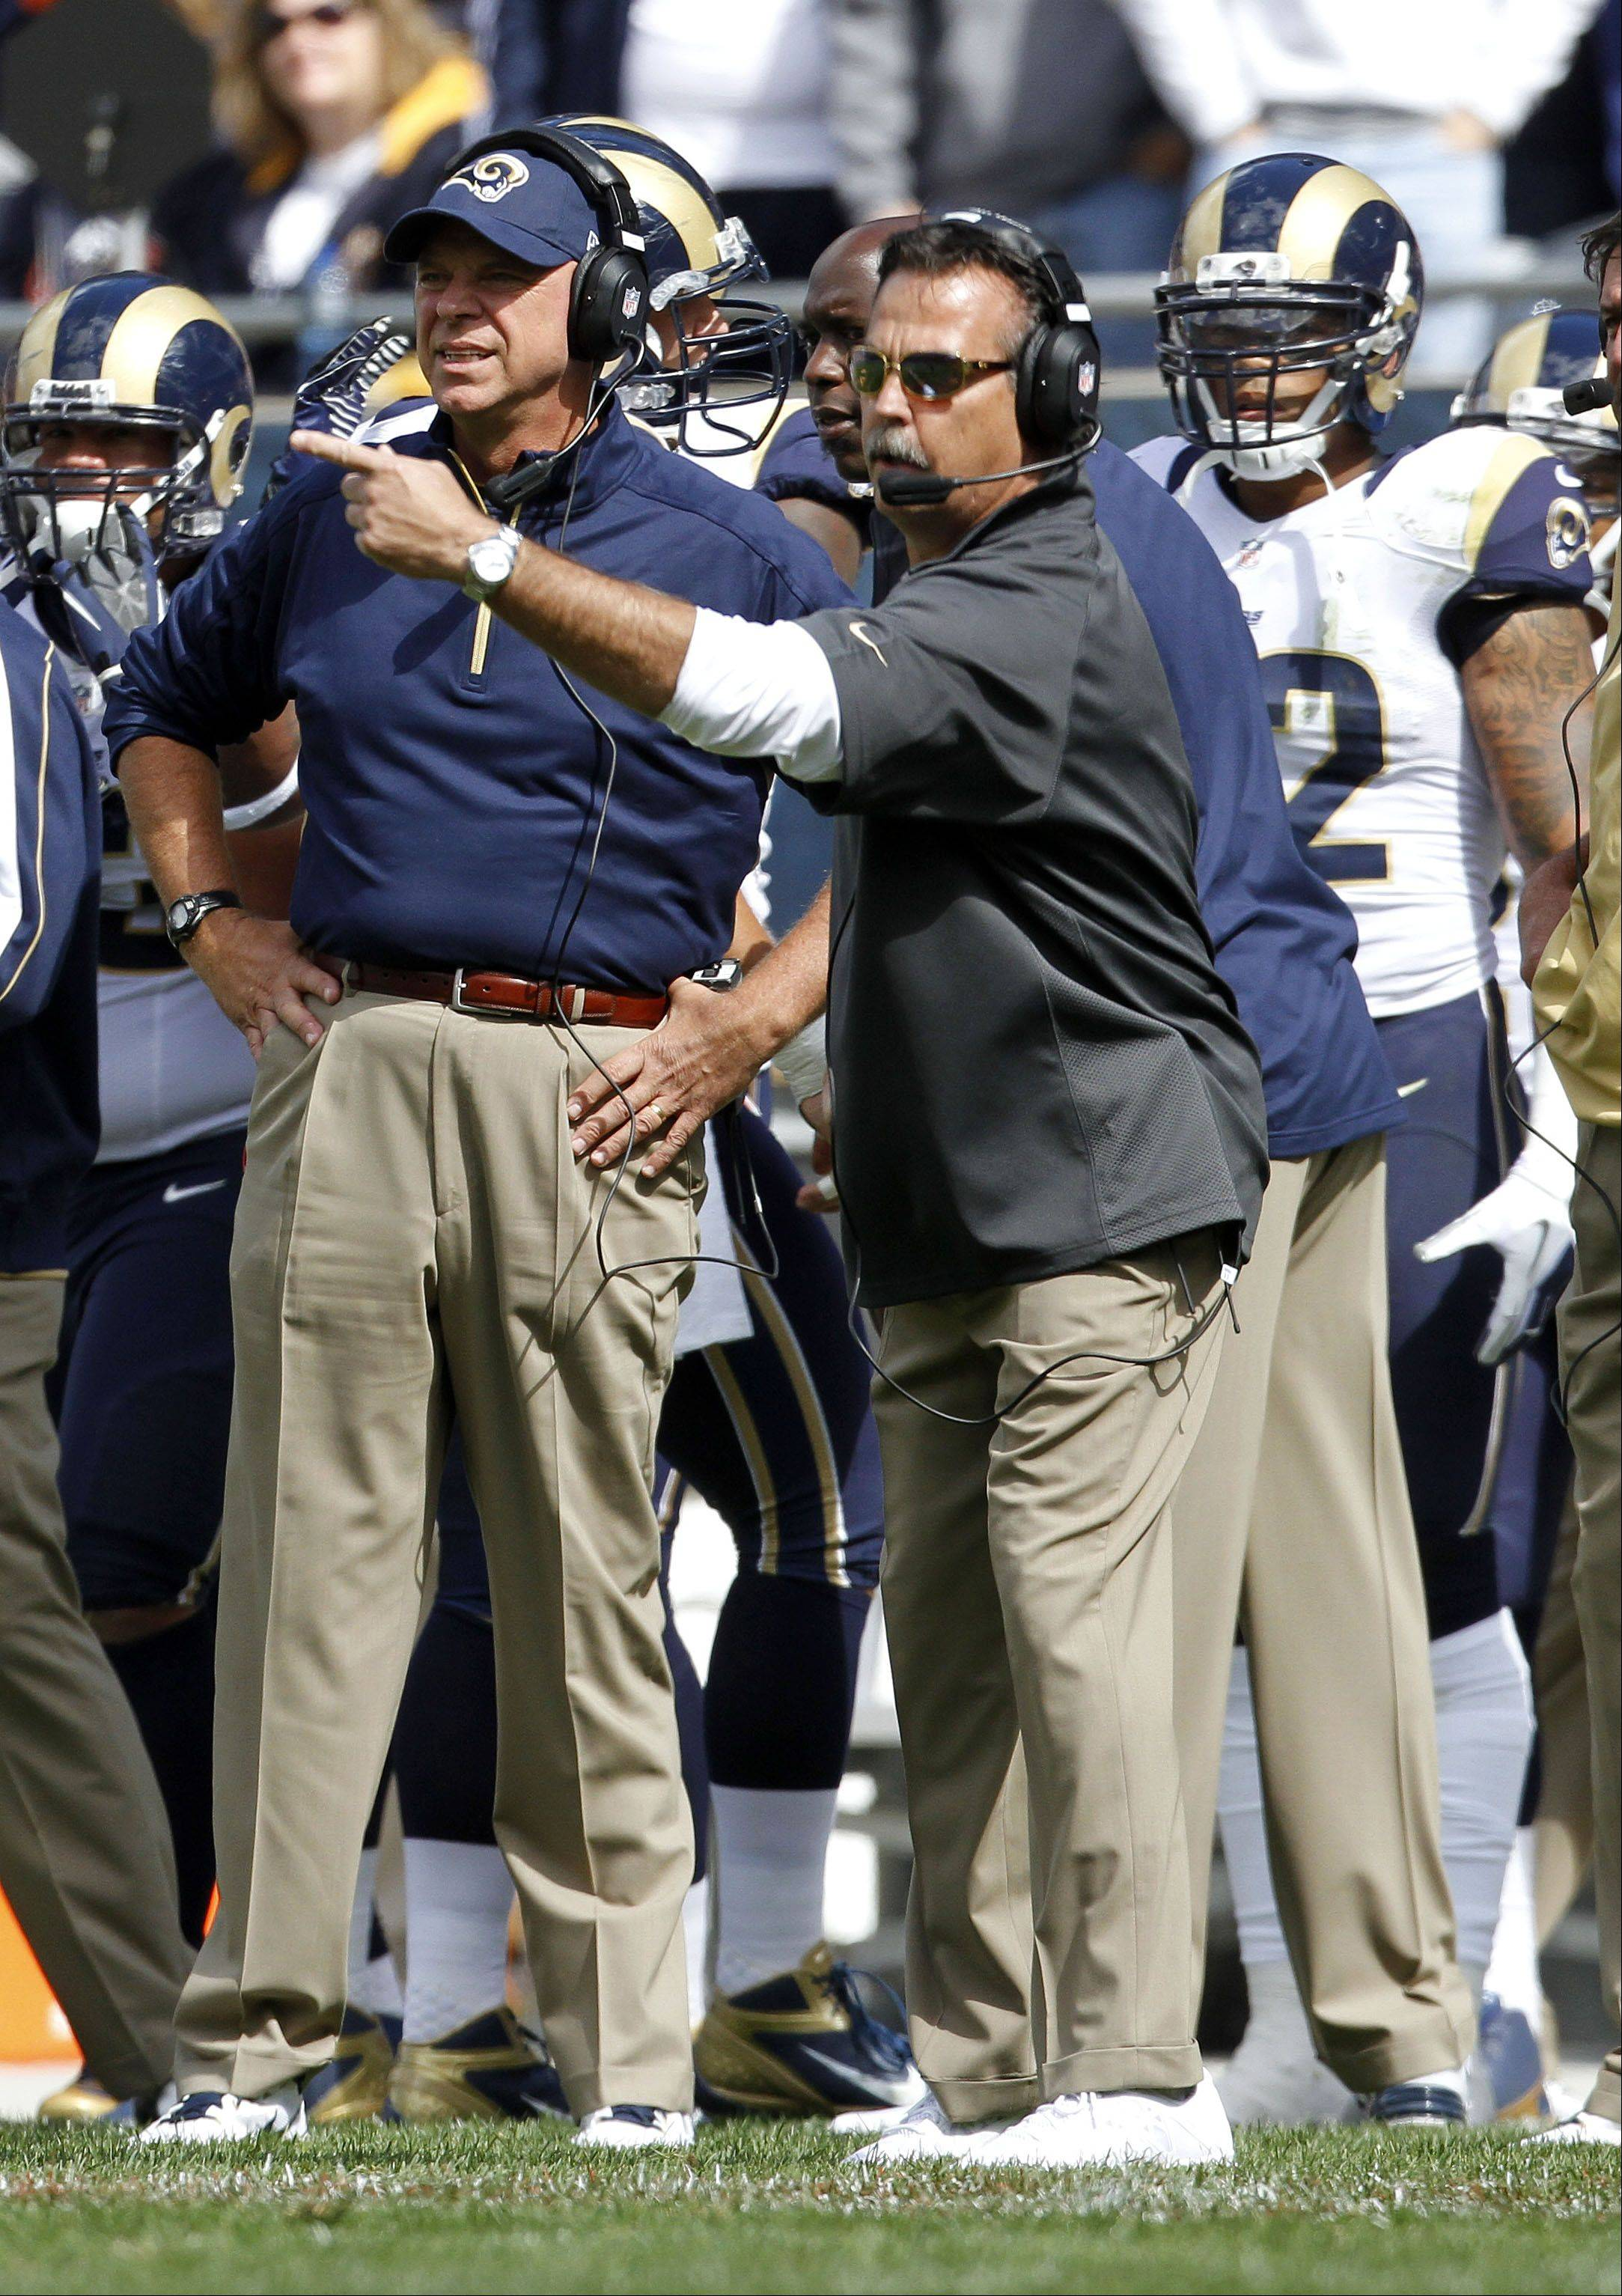 St. Louis Rams coach Jeff Fisher talks on the sidelines Sunday at Soldier Field in Chicago.